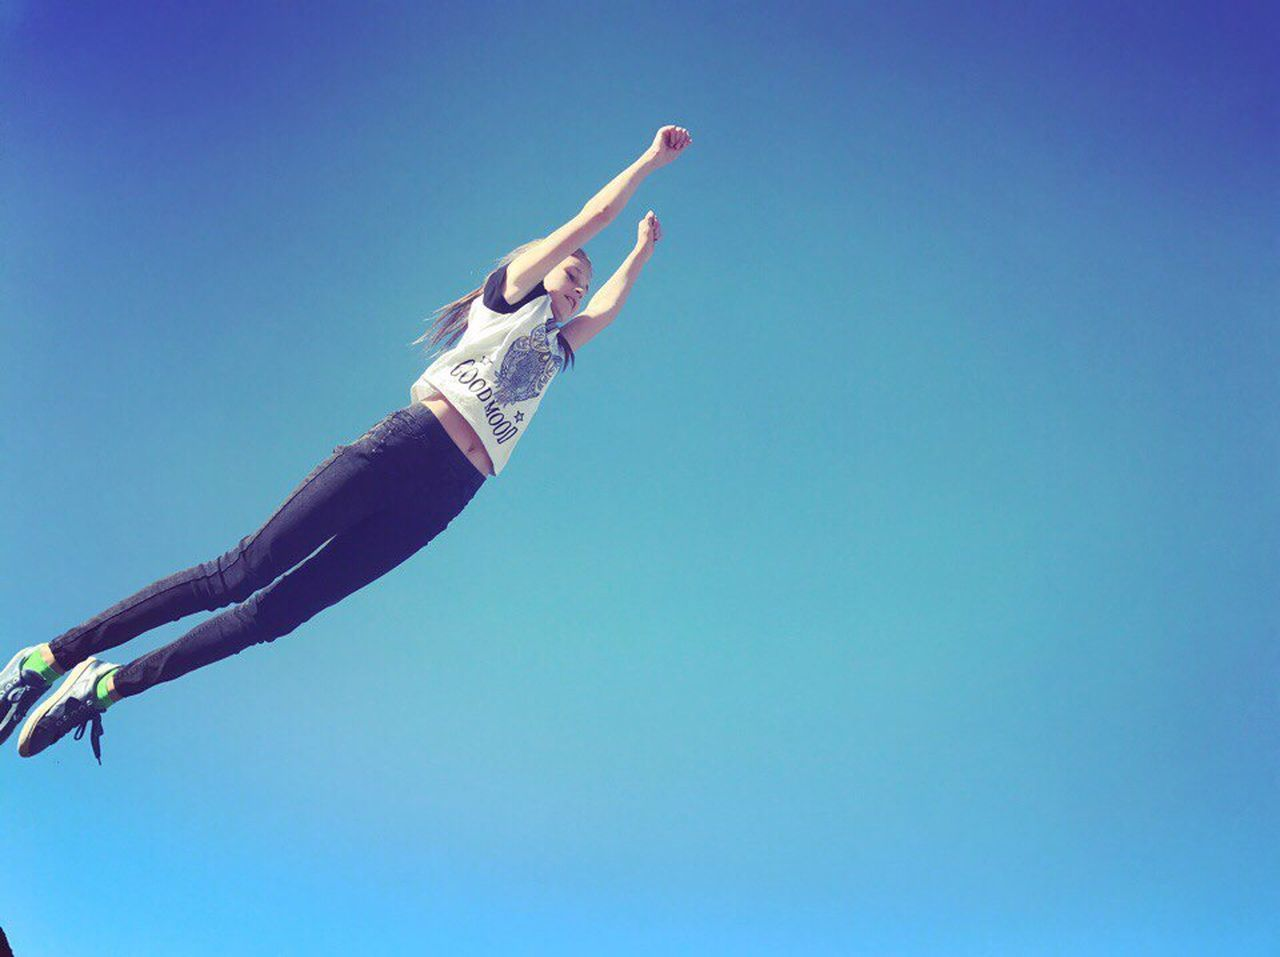 sky, one person, blue, copy space, low angle view, clear sky, human arm, human body part, nature, limb, day, adult, mid-air, full length, jumping, human limb, outdoors, arms raised, flying